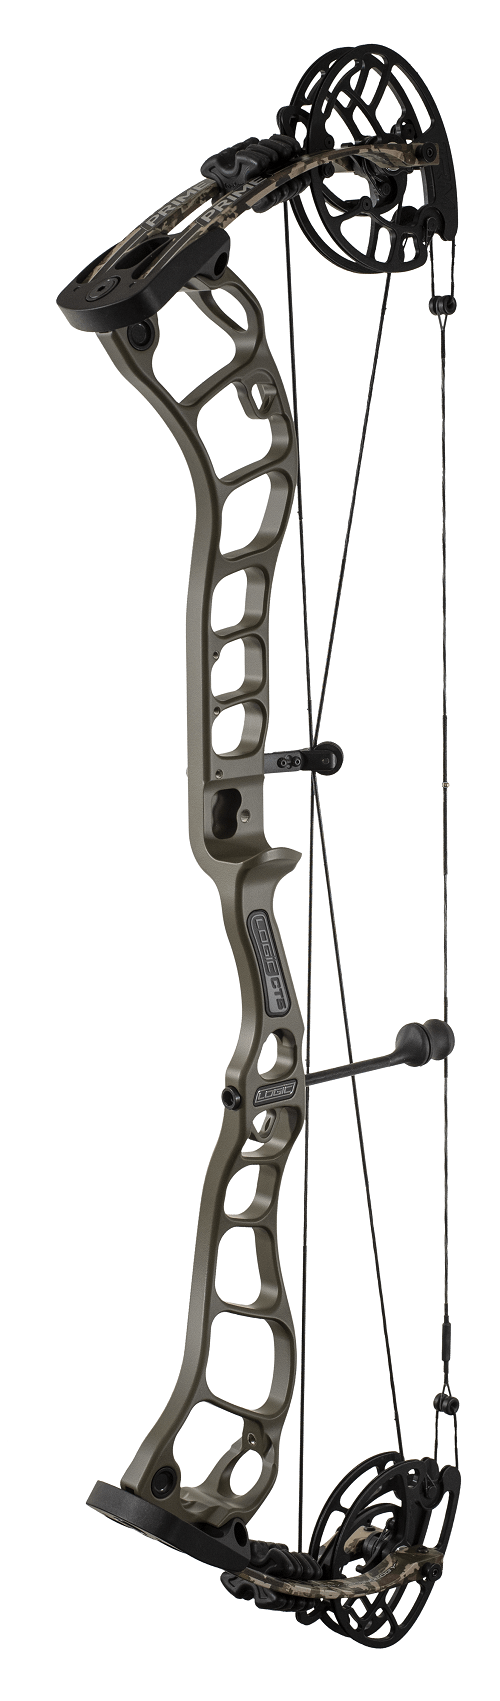 Prime Archery (G5 Outdoors)